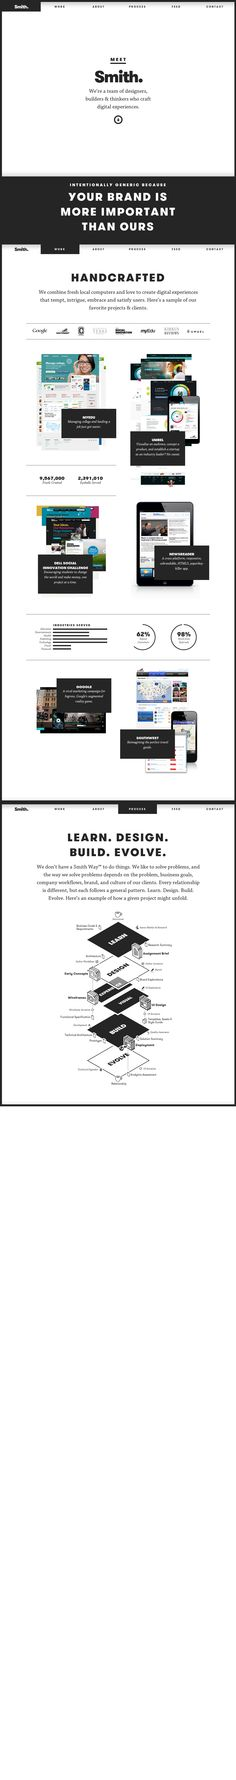 WebDesign Just Smith #CSS3 #HTML5